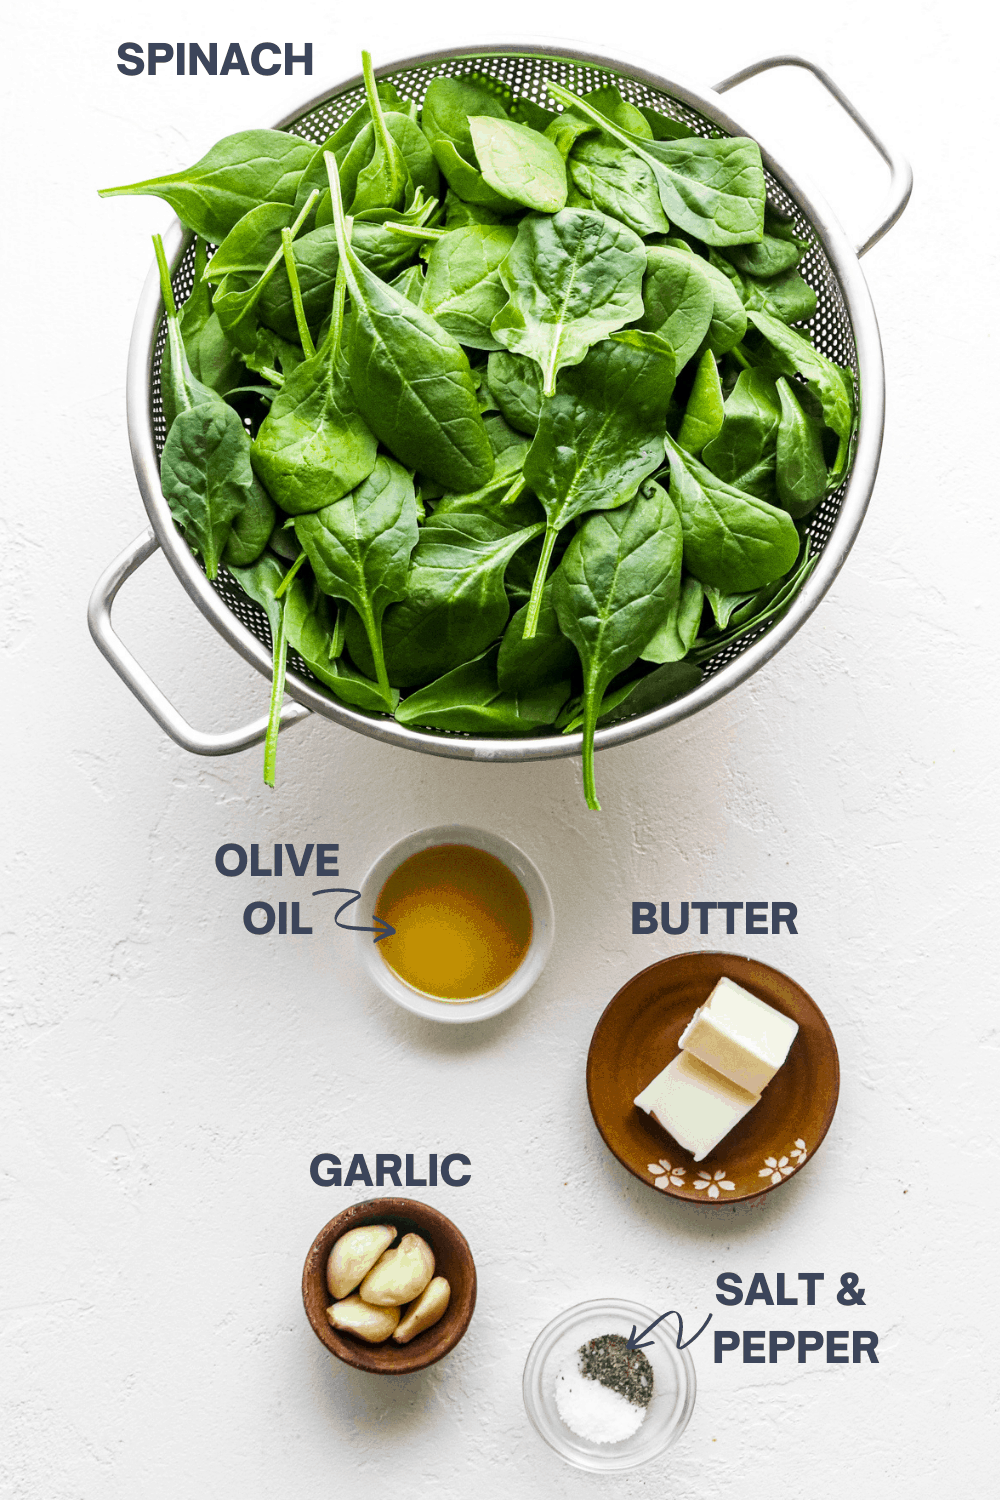 Spinach in a colander with olive oil, butter, salt and pepper in bowl next to it on a white surface